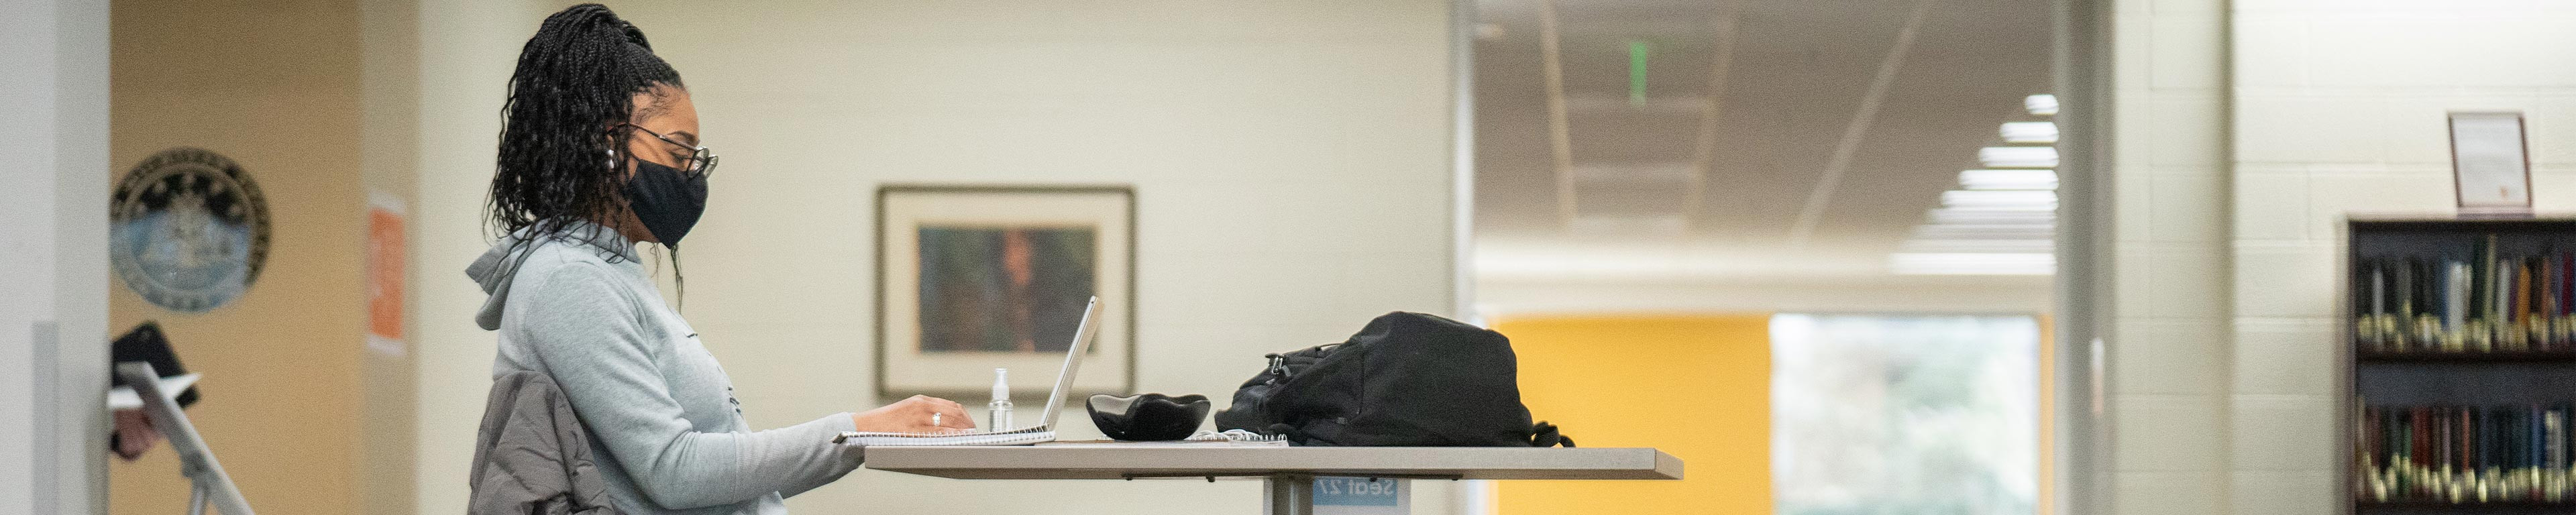 A student studying on a laptop.